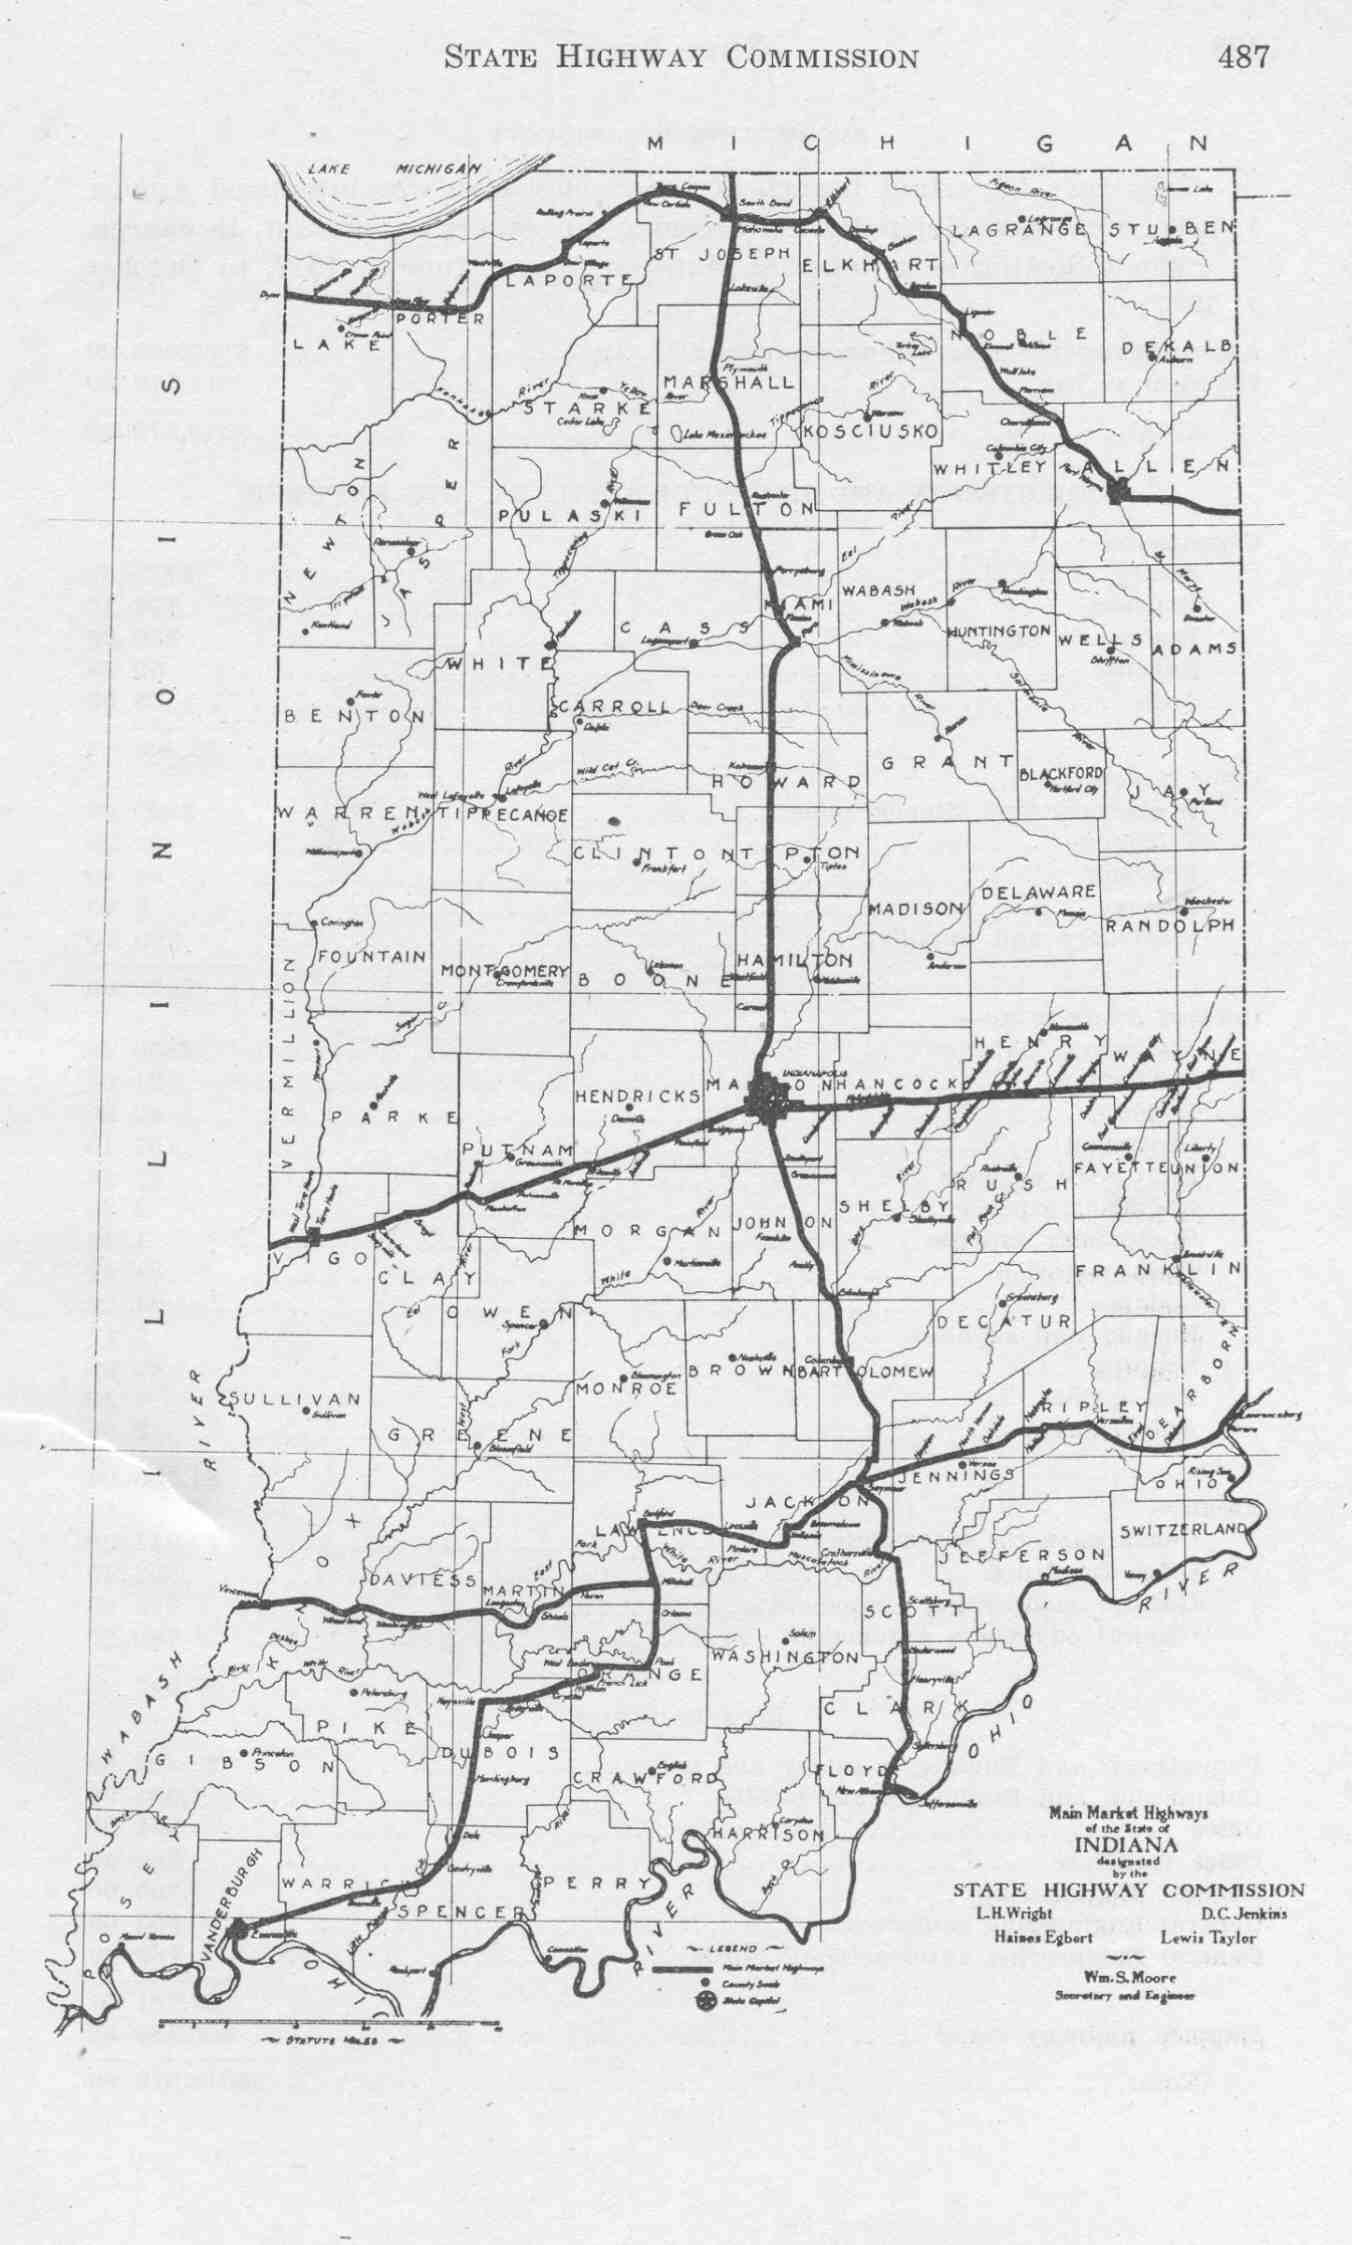 Indiana State Highway Map And State Highway Commission - Map of state of indiana